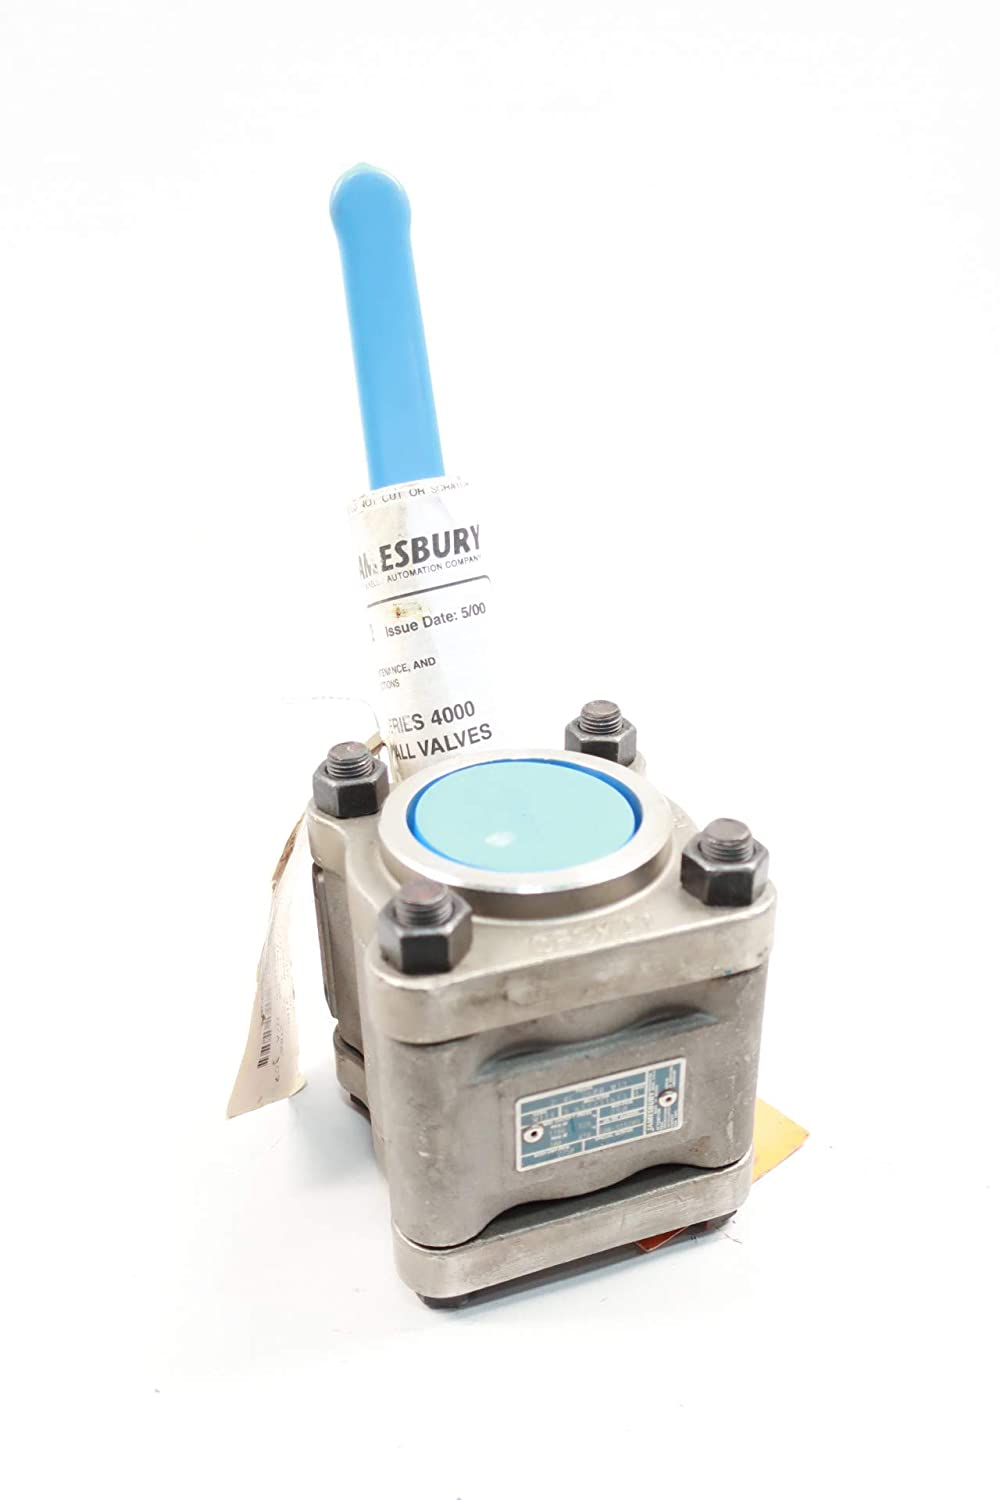 JAMESBURY 2 4C 3600 MT1 Manual Stainless Socket Weld Ball Valve 2IN